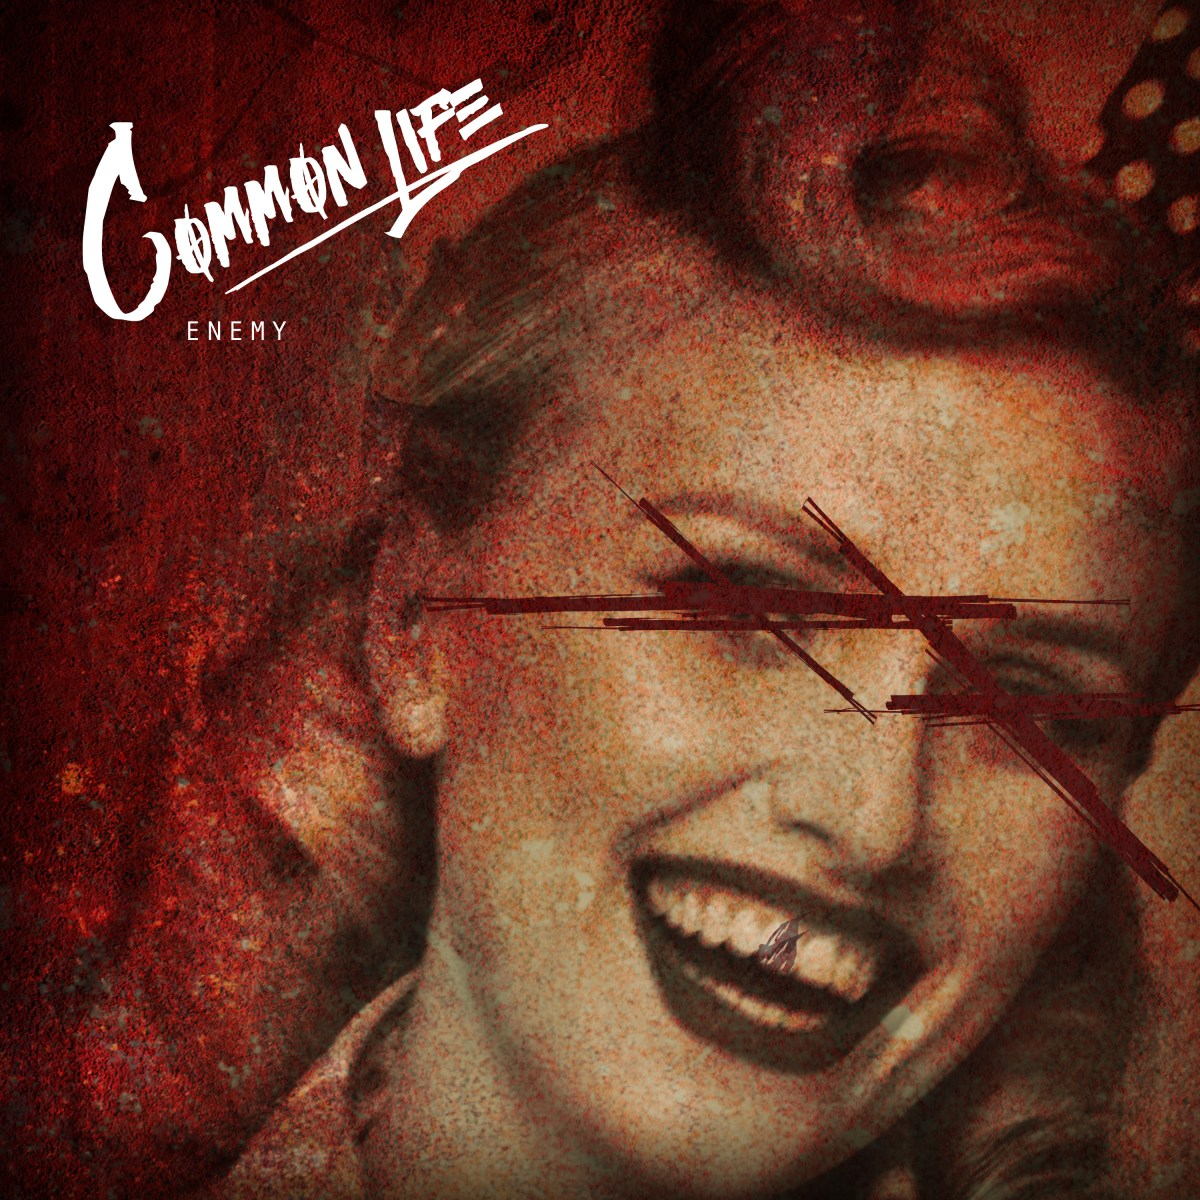 Listen to the new song for Common Life (feat. ex-Heroes for Hire member Duane Hazell)